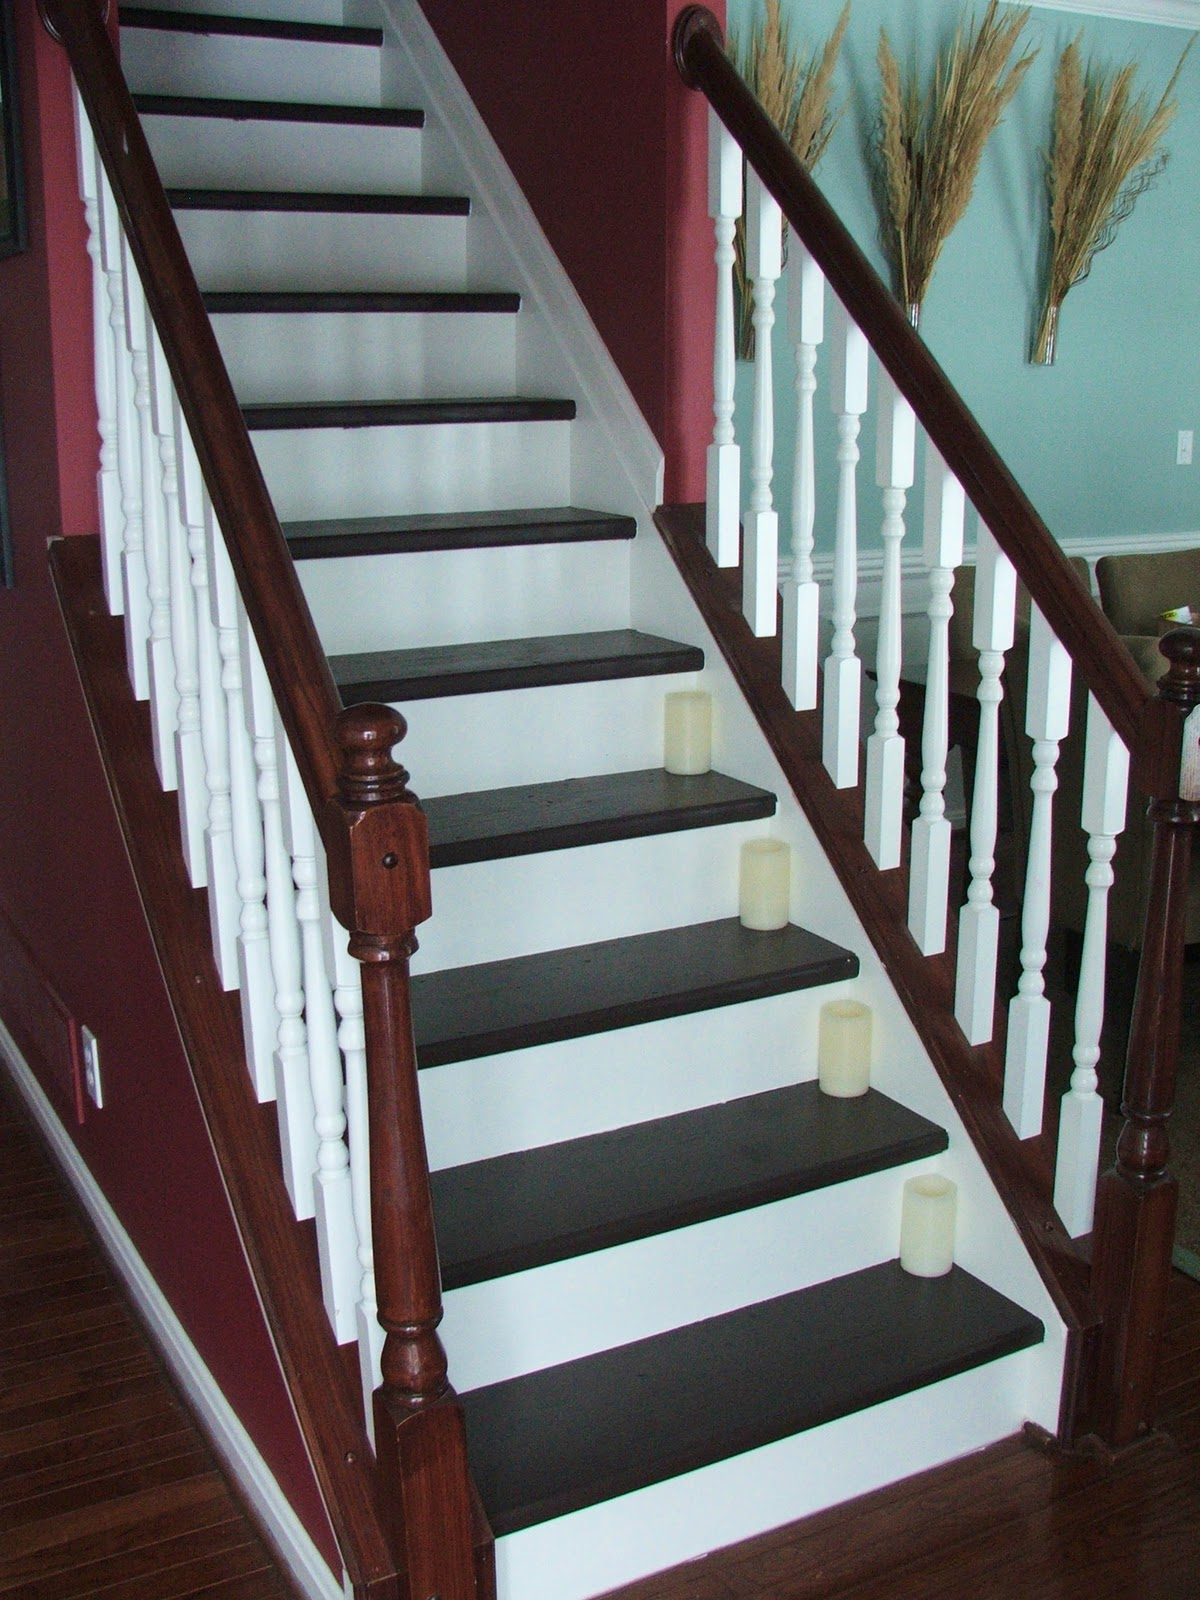 Remodelaholic Under 100 Carpeted Stair To Wooden Tread | Redoing Stairs With Wood